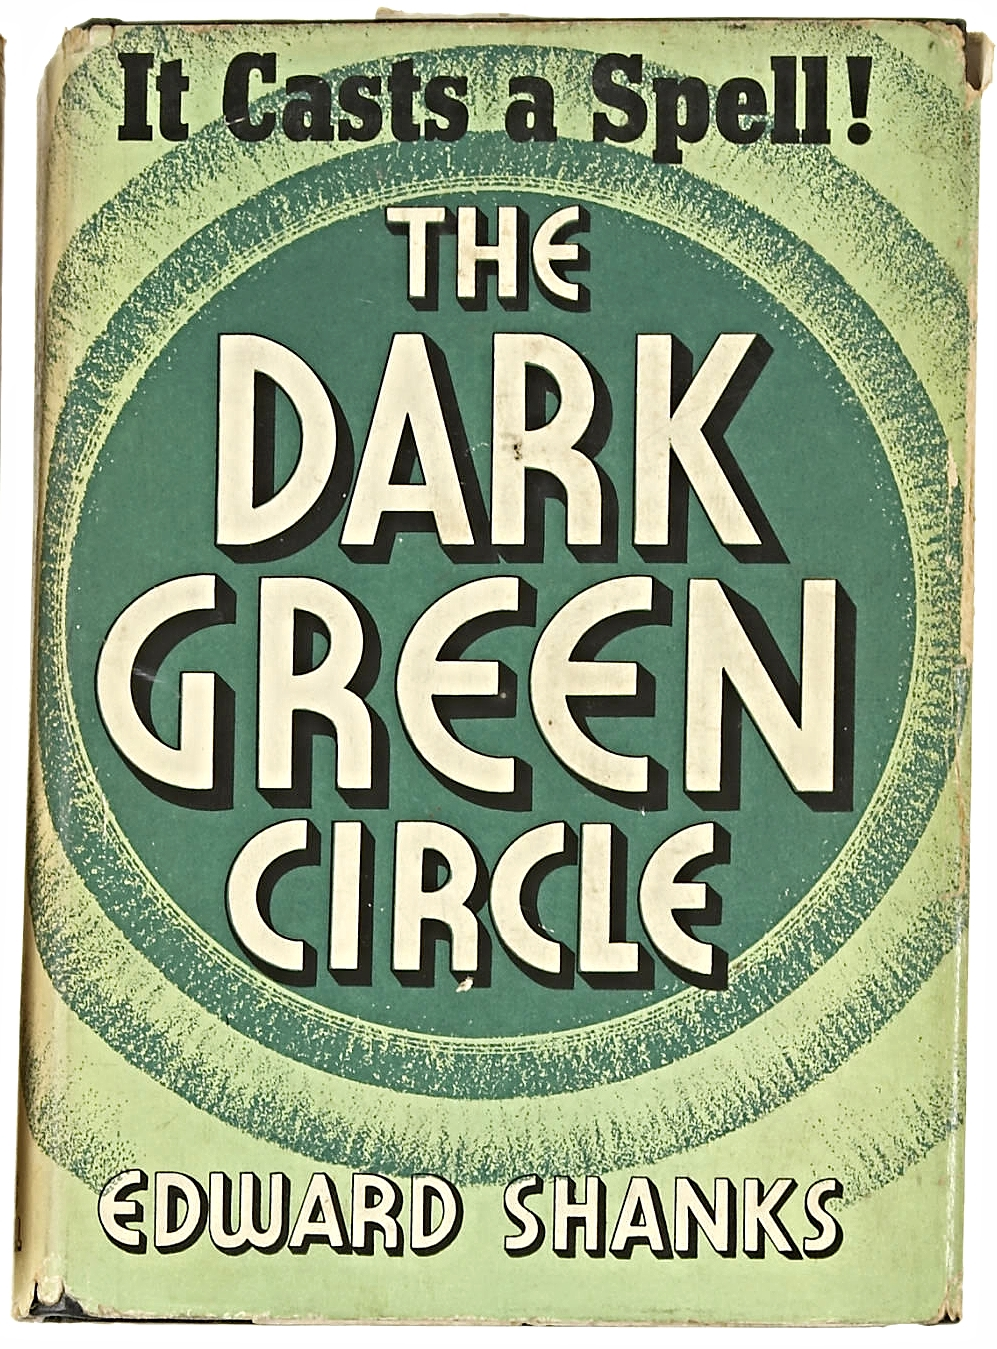 Edward Shanks. The Dark Green Circle. Indianapolis and New York: The Bobbs-Merrill Company, [1936]. First edition.